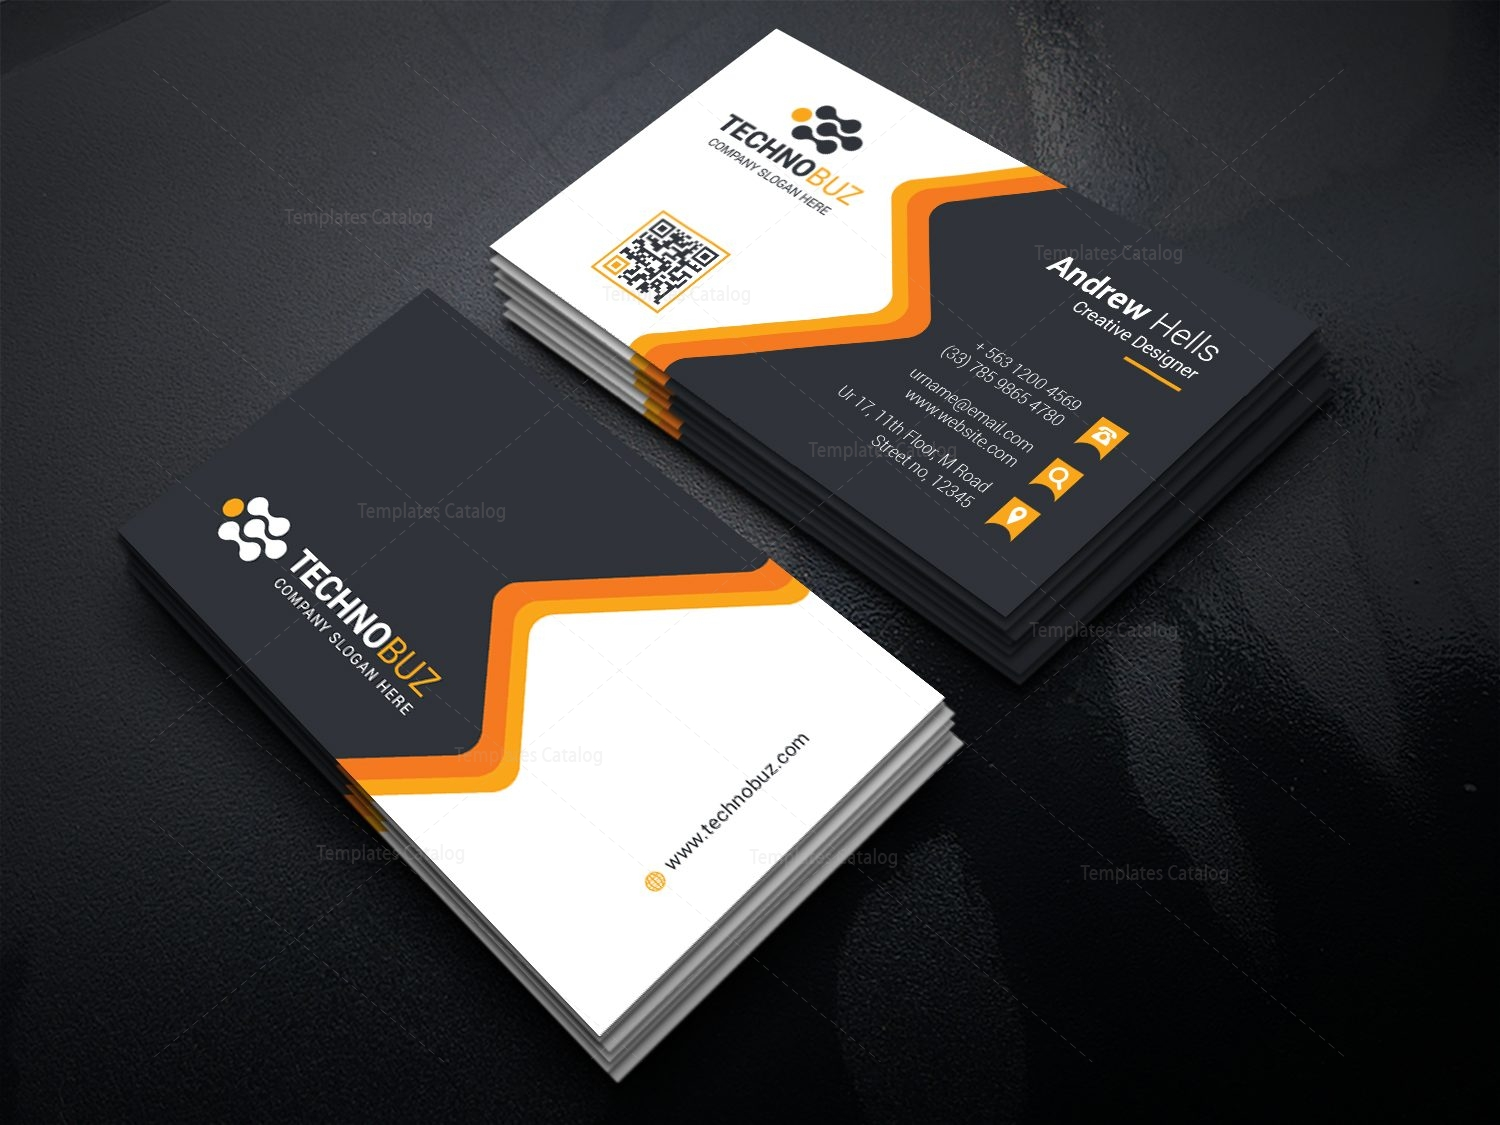 Fancy premium business card template 000741 template catalog fancy premium business card template 3 cheaphphosting Choice Image